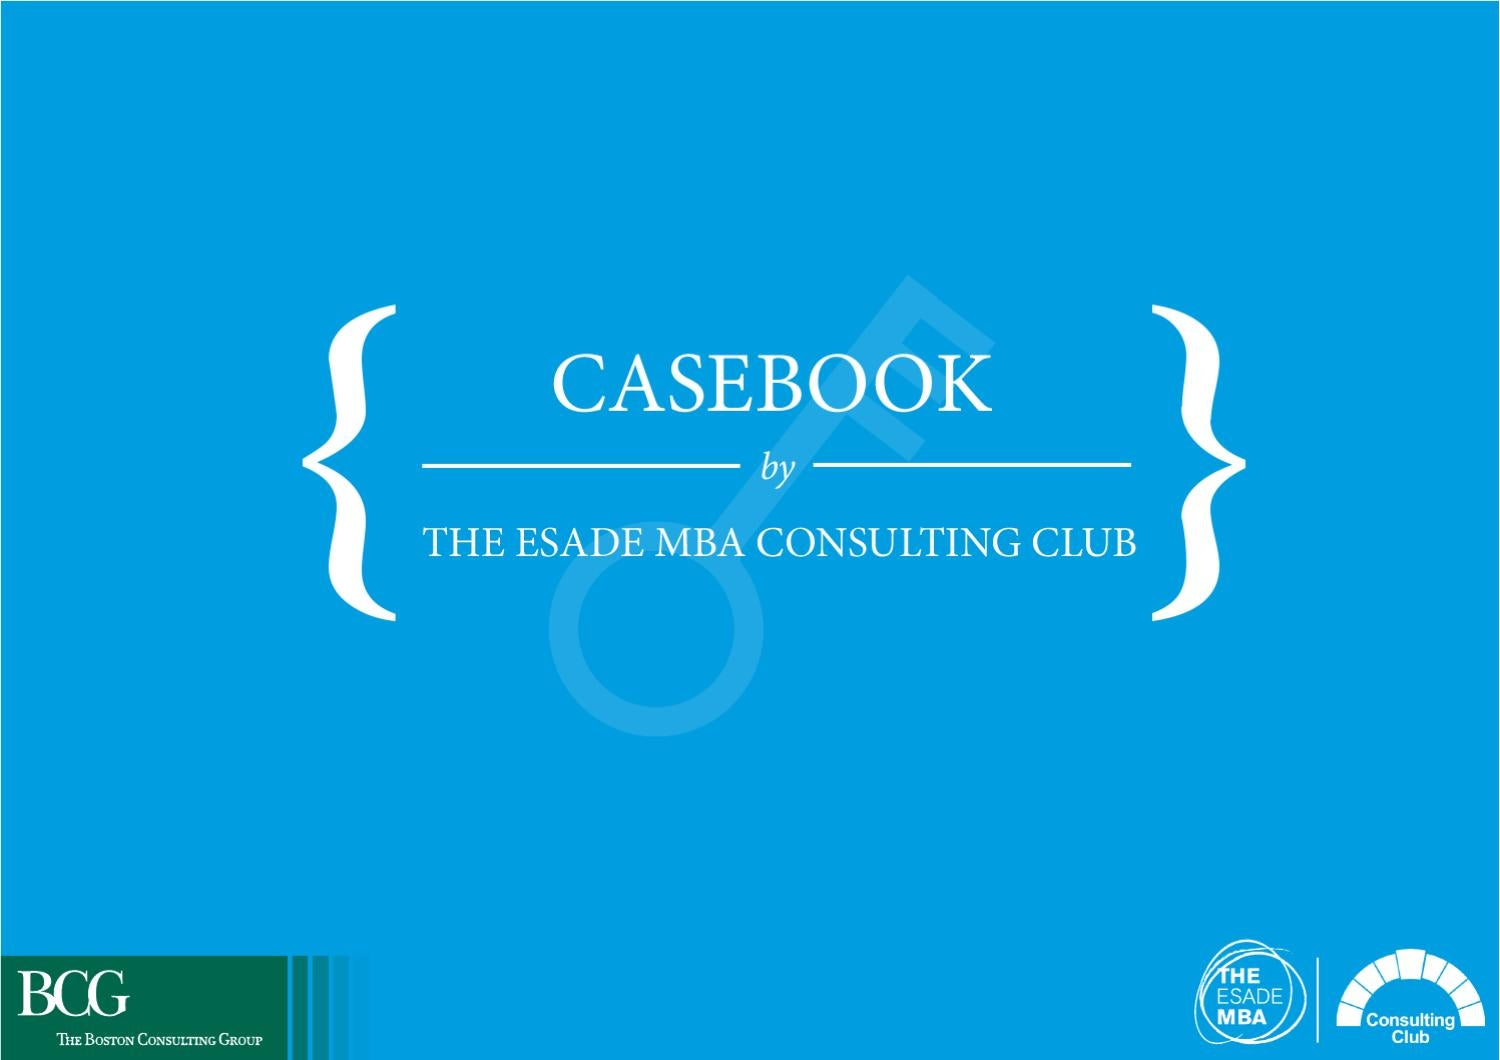 CASEBOOK by The ESADE MBA Consulting Club by ESADE - issuu